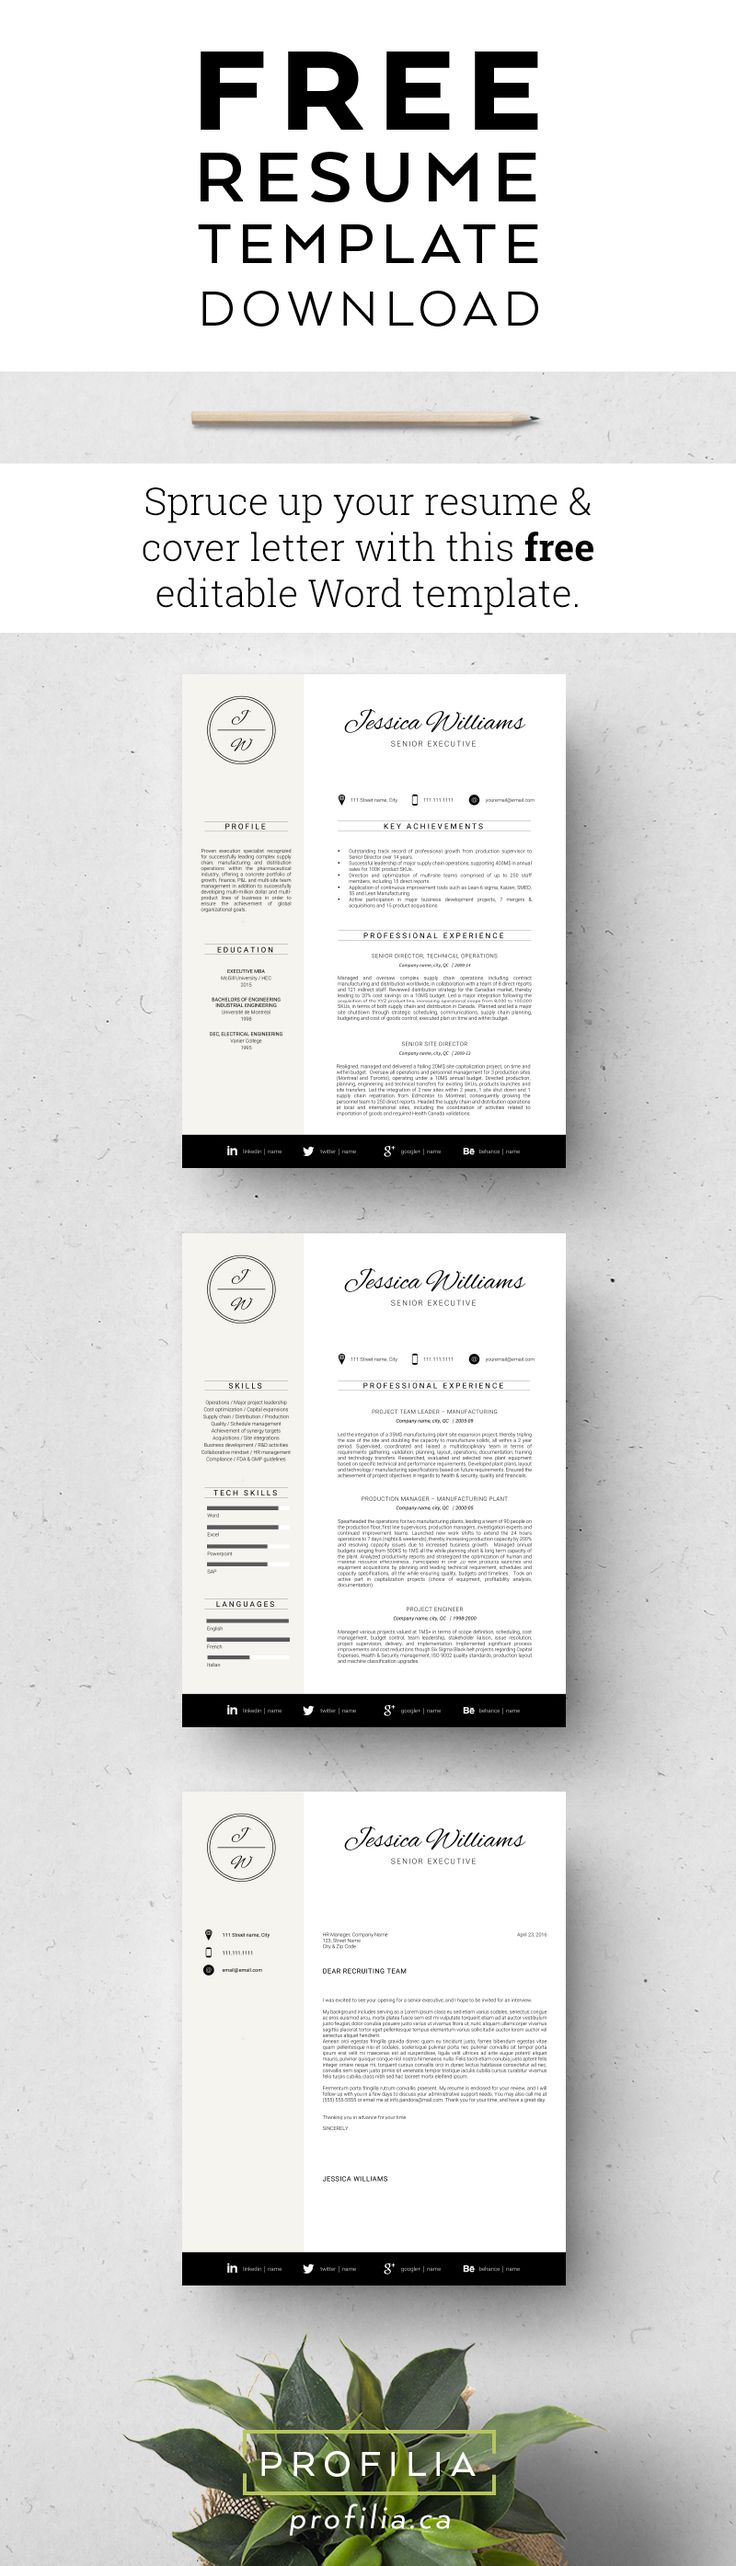 best 25 cover letter template ideas on pinterest cover letters job cover letter template and cover letter example